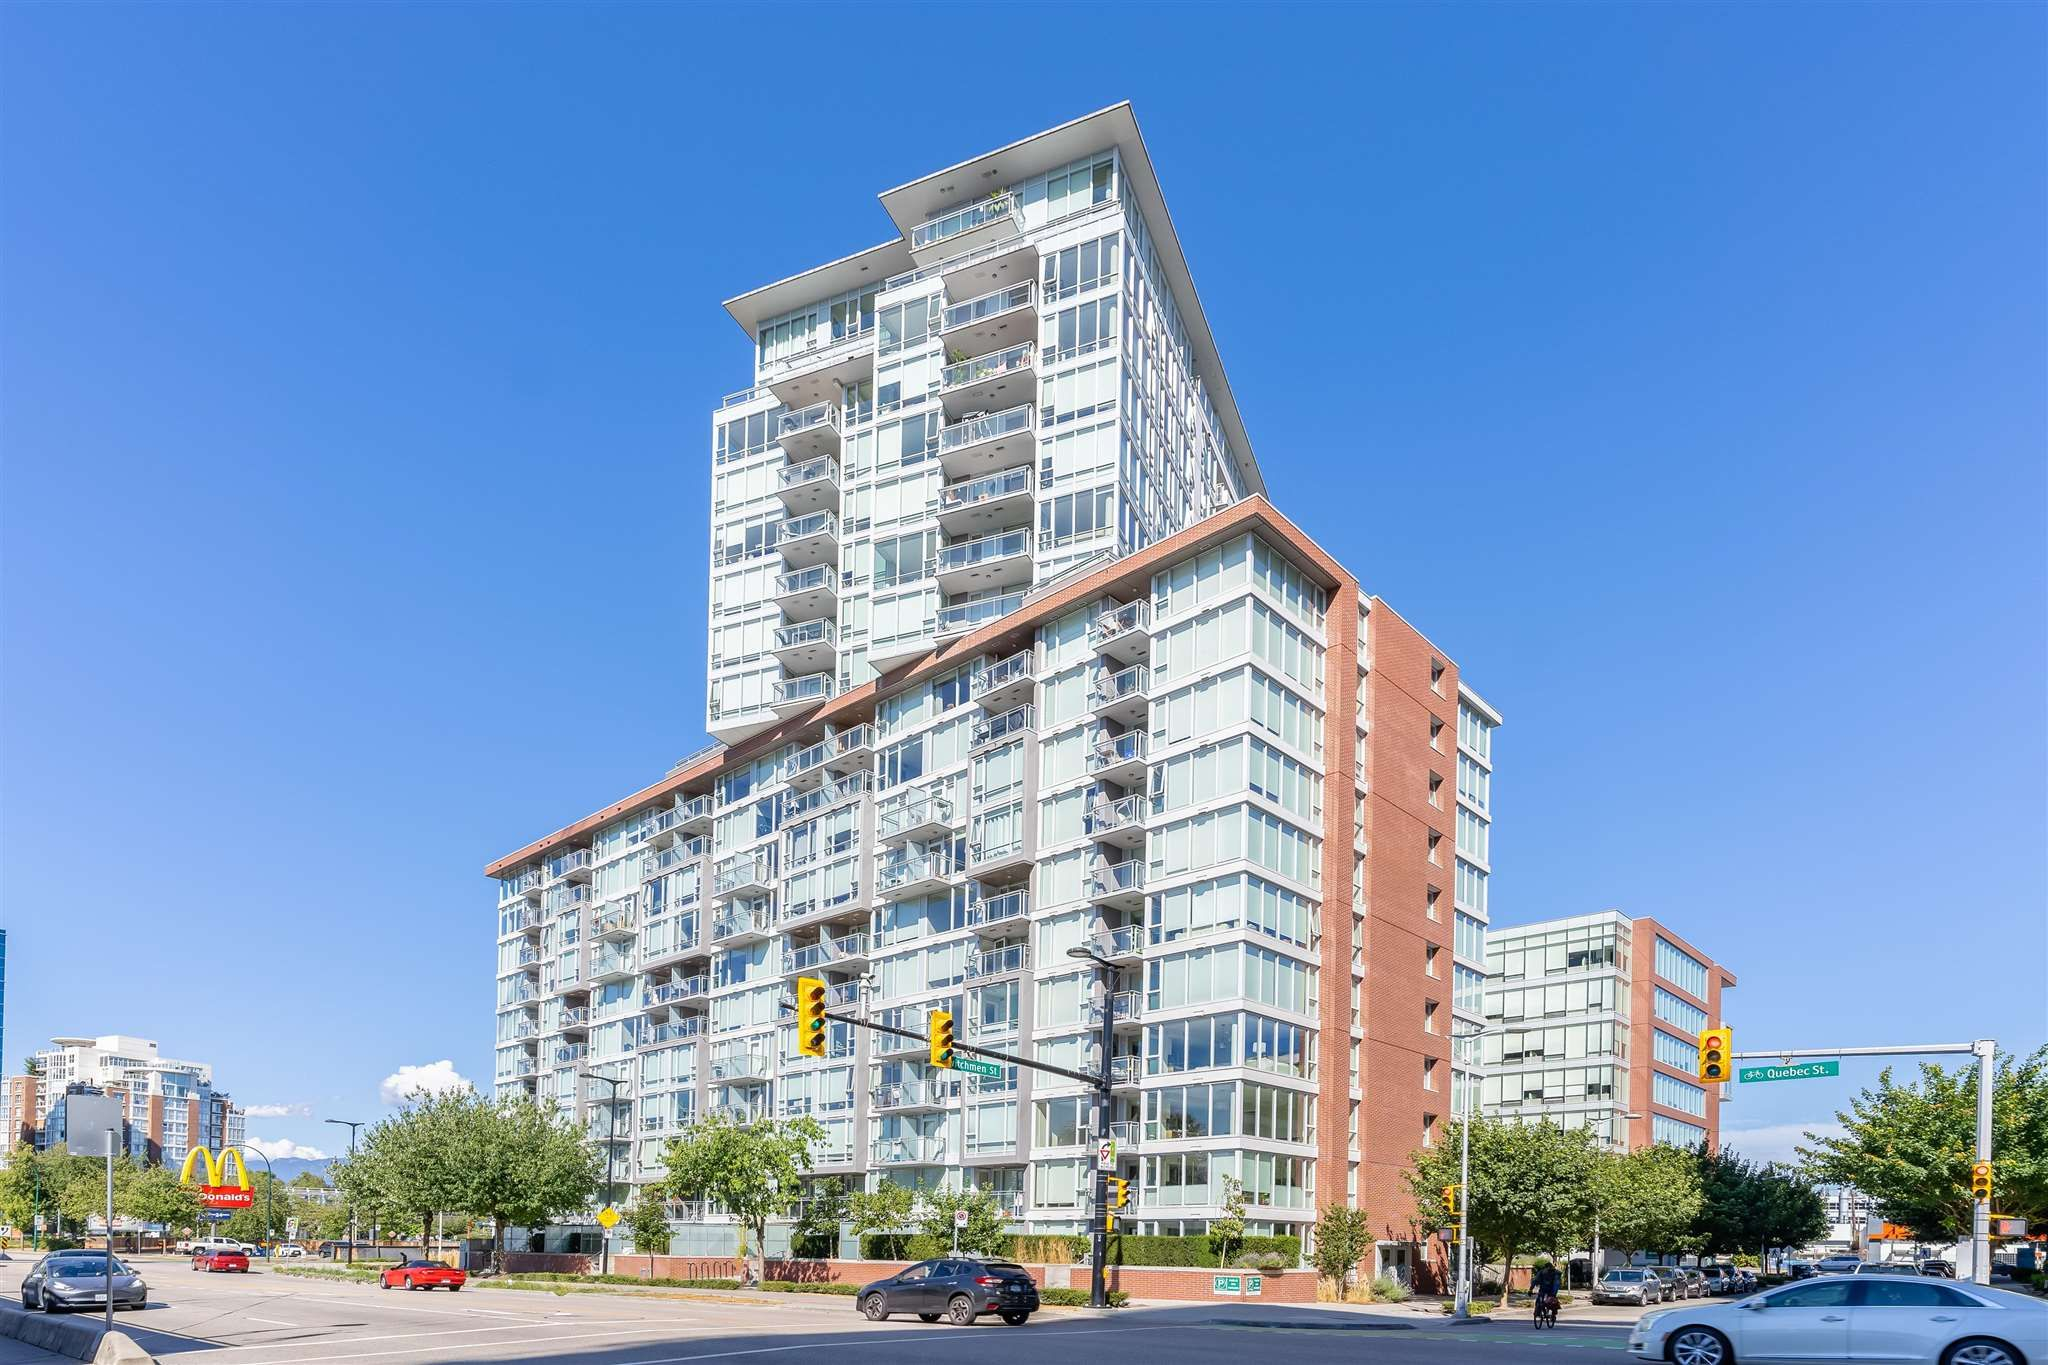 Main Photo: 1102 1618 QUEBEC STREET in Vancouver: Mount Pleasant VE Condo for sale (Vancouver East)  : MLS®# R2602911